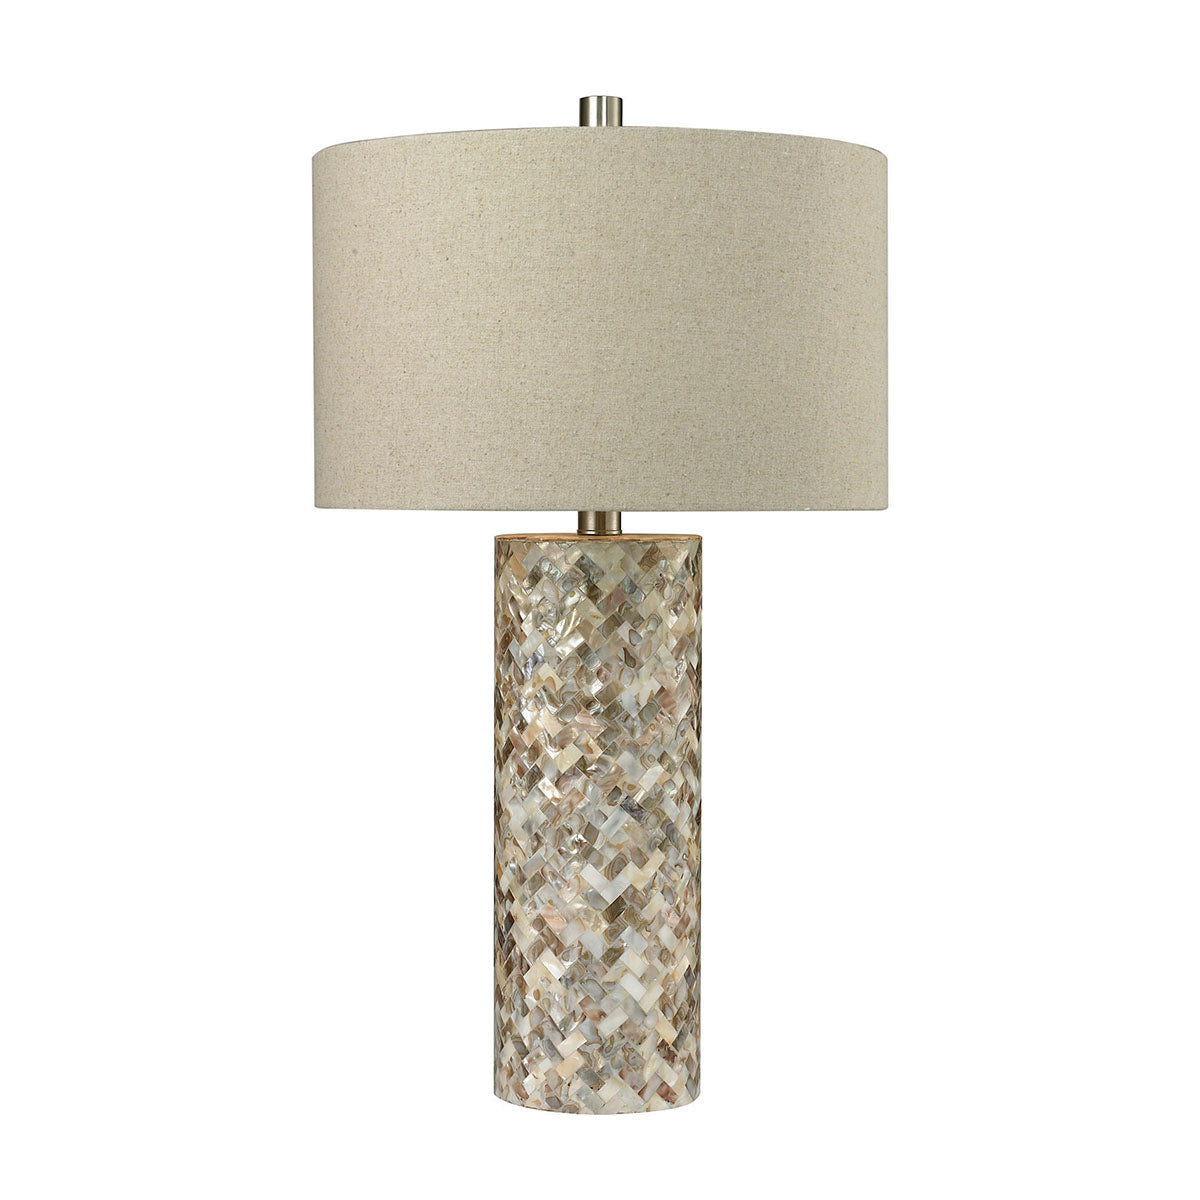 Herringbone Table Lamp In Natural Mother of Pearl